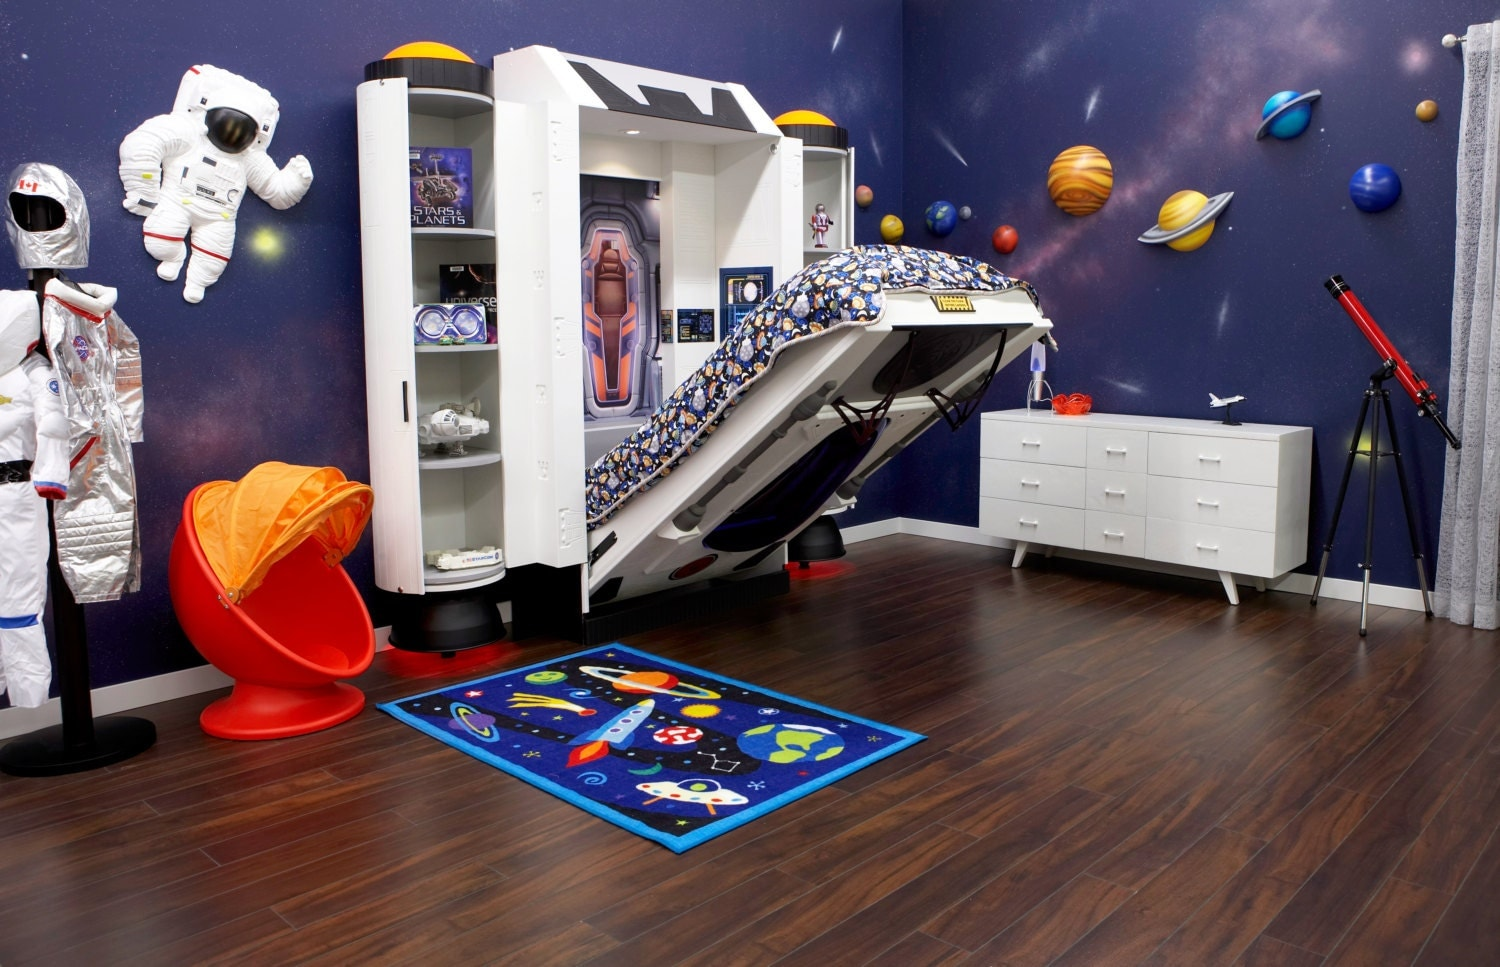 Outer Space Bedroom Decor Spaceship Bed Childrens Bed For Astronaut Theme Room